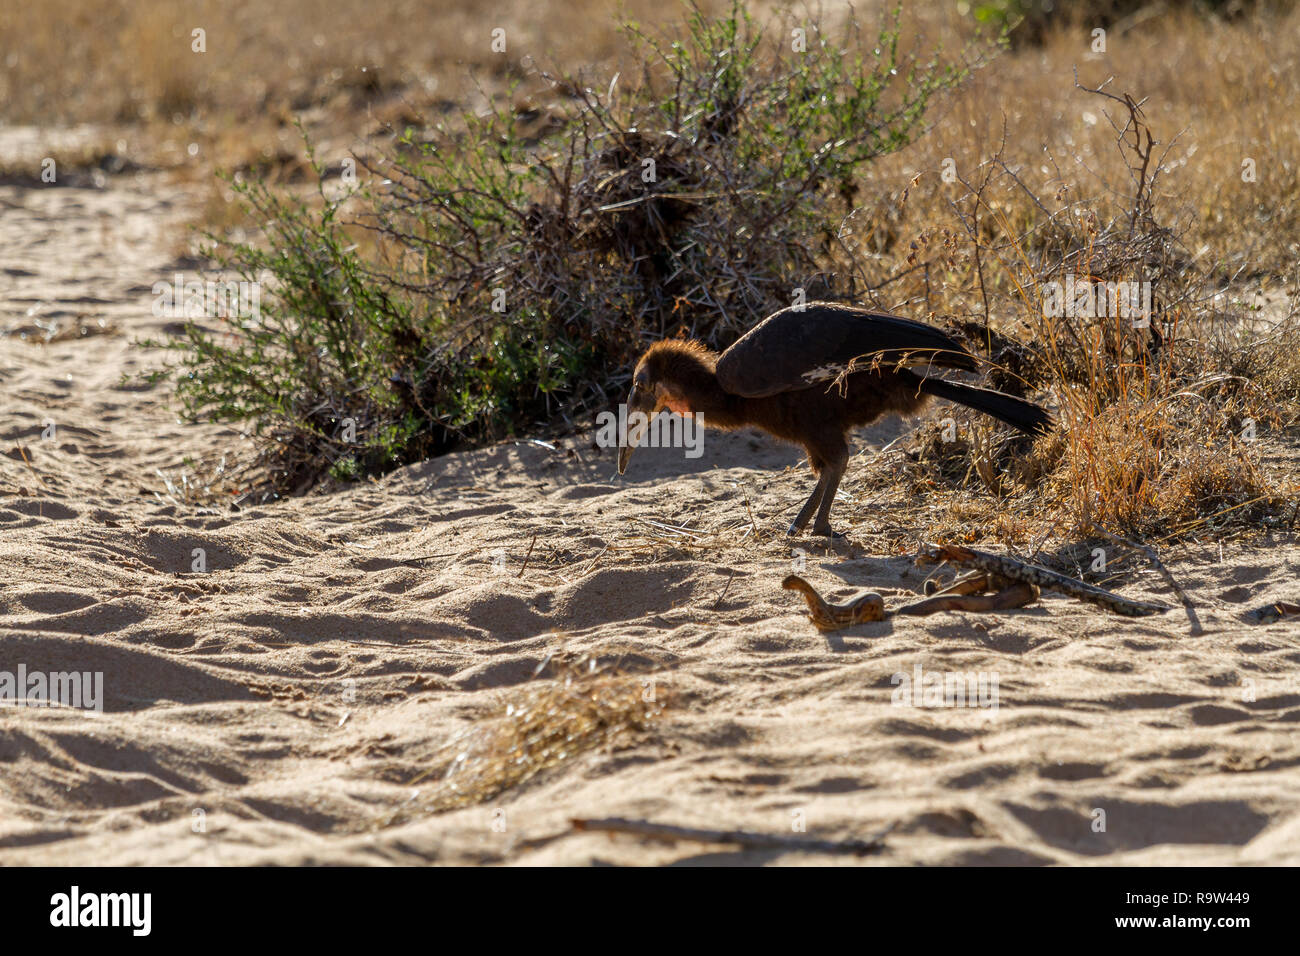 Juvenile ground hornbill chick (Bucorvus leadbeateri) on the ground scavenging for food, South Africa - Stock Image